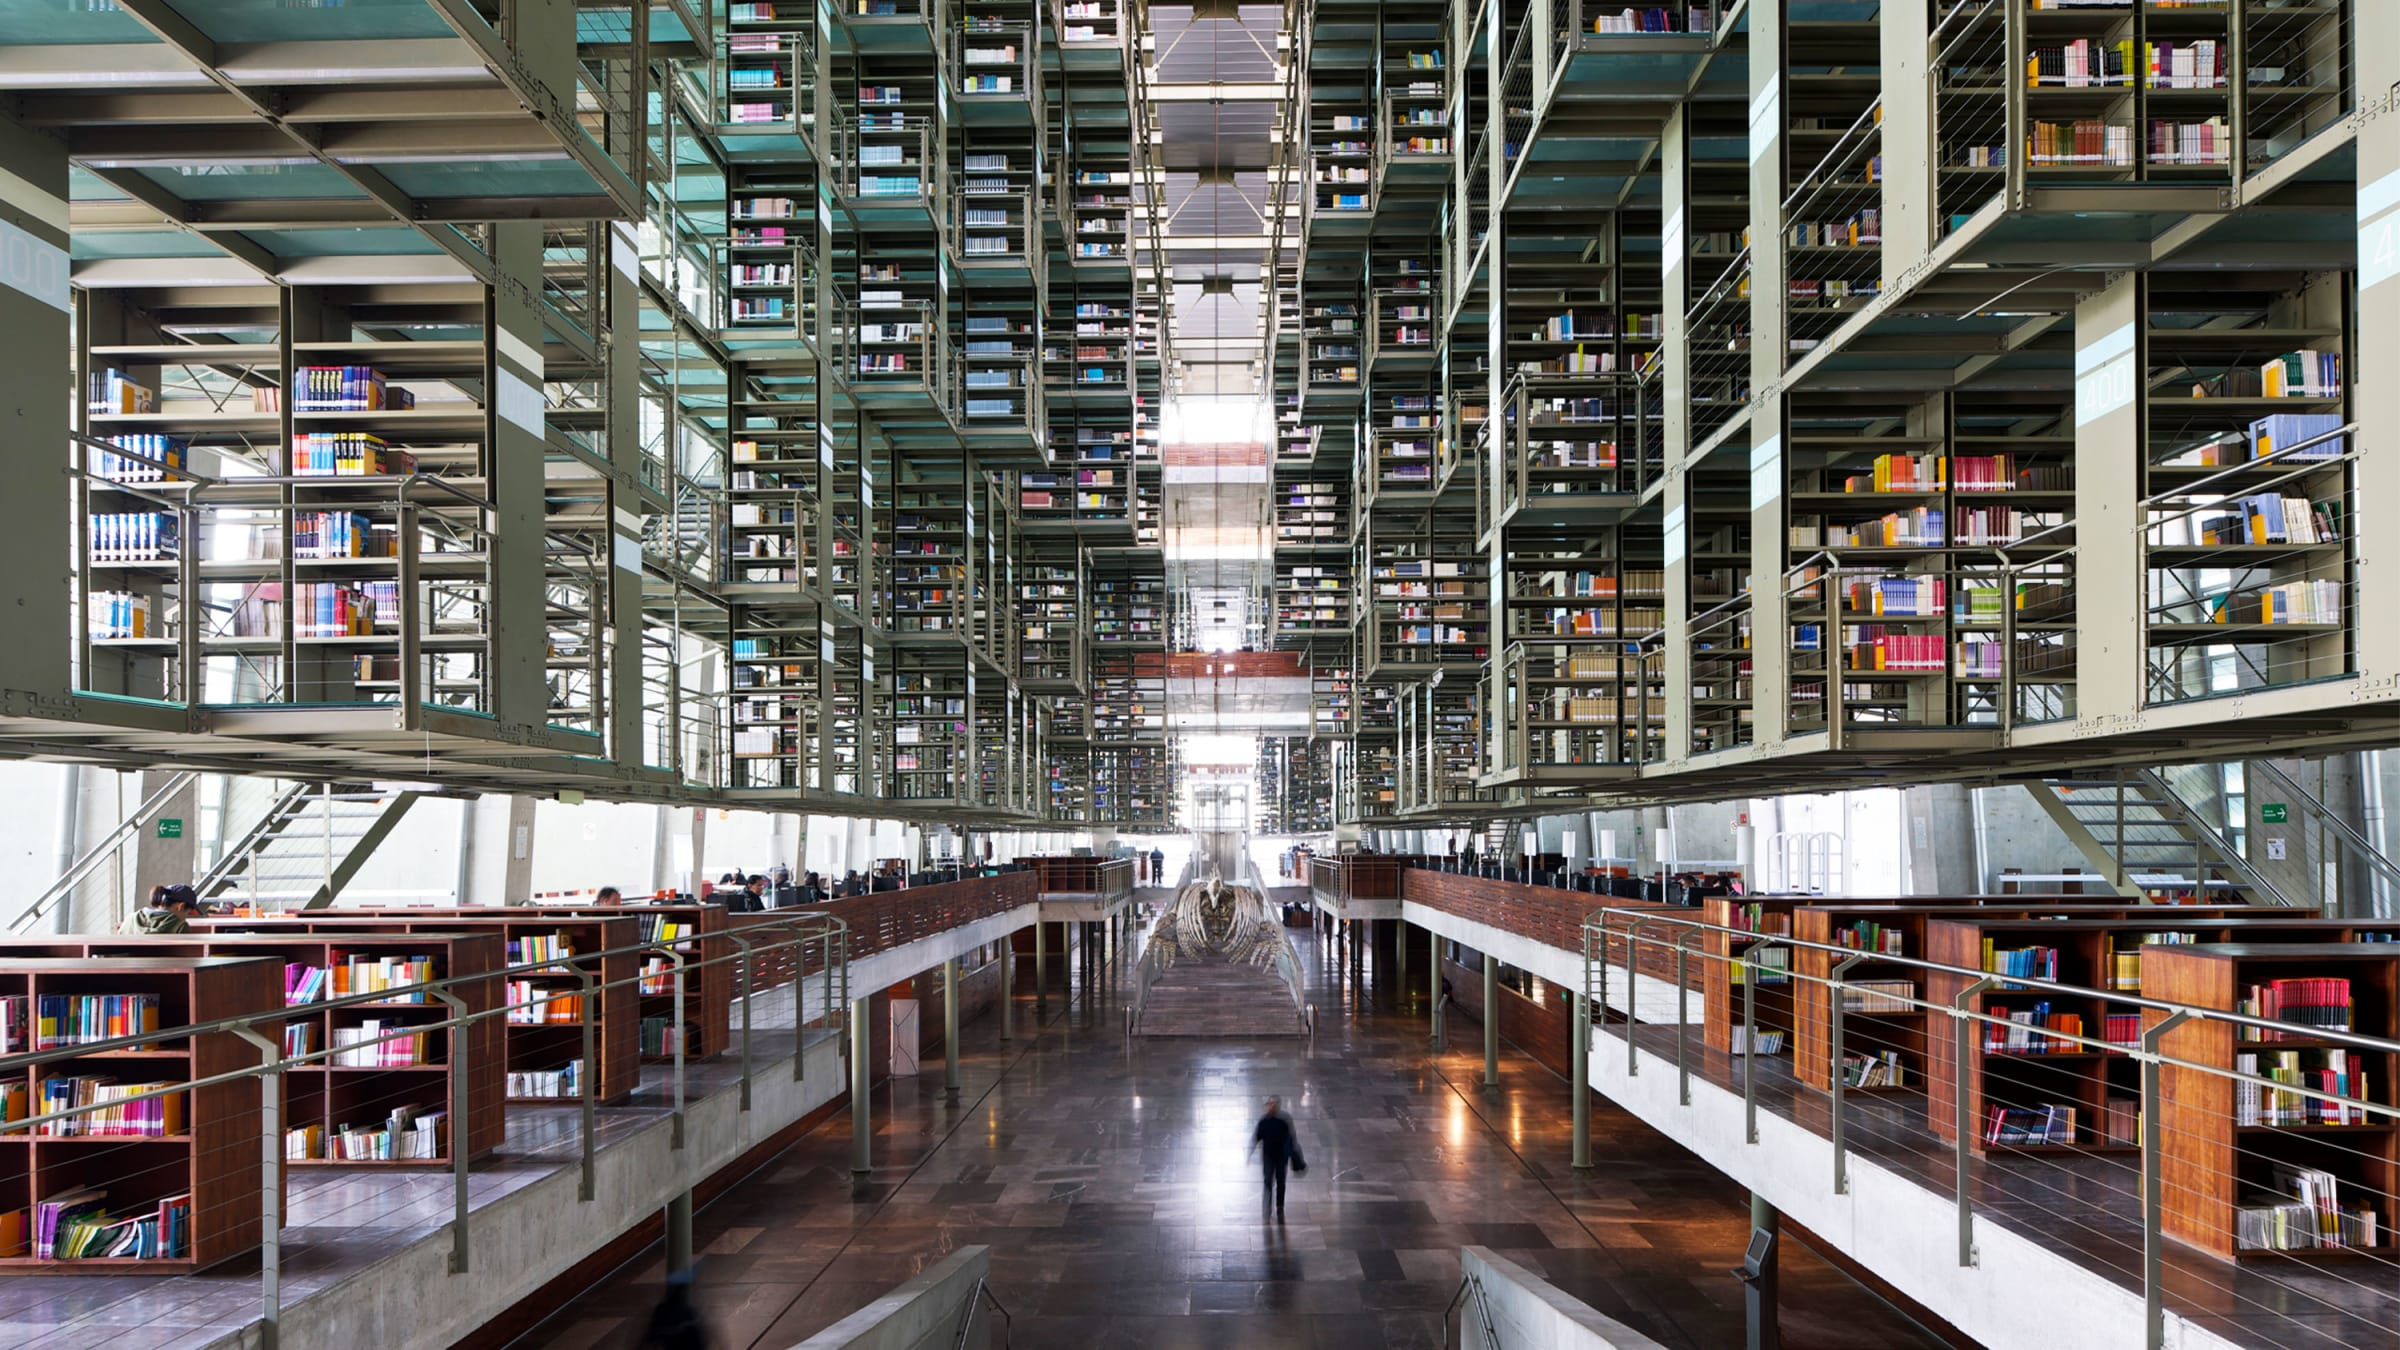 Biblioteca Vasconcelos Is One of the World's Most Beautiful Libraries